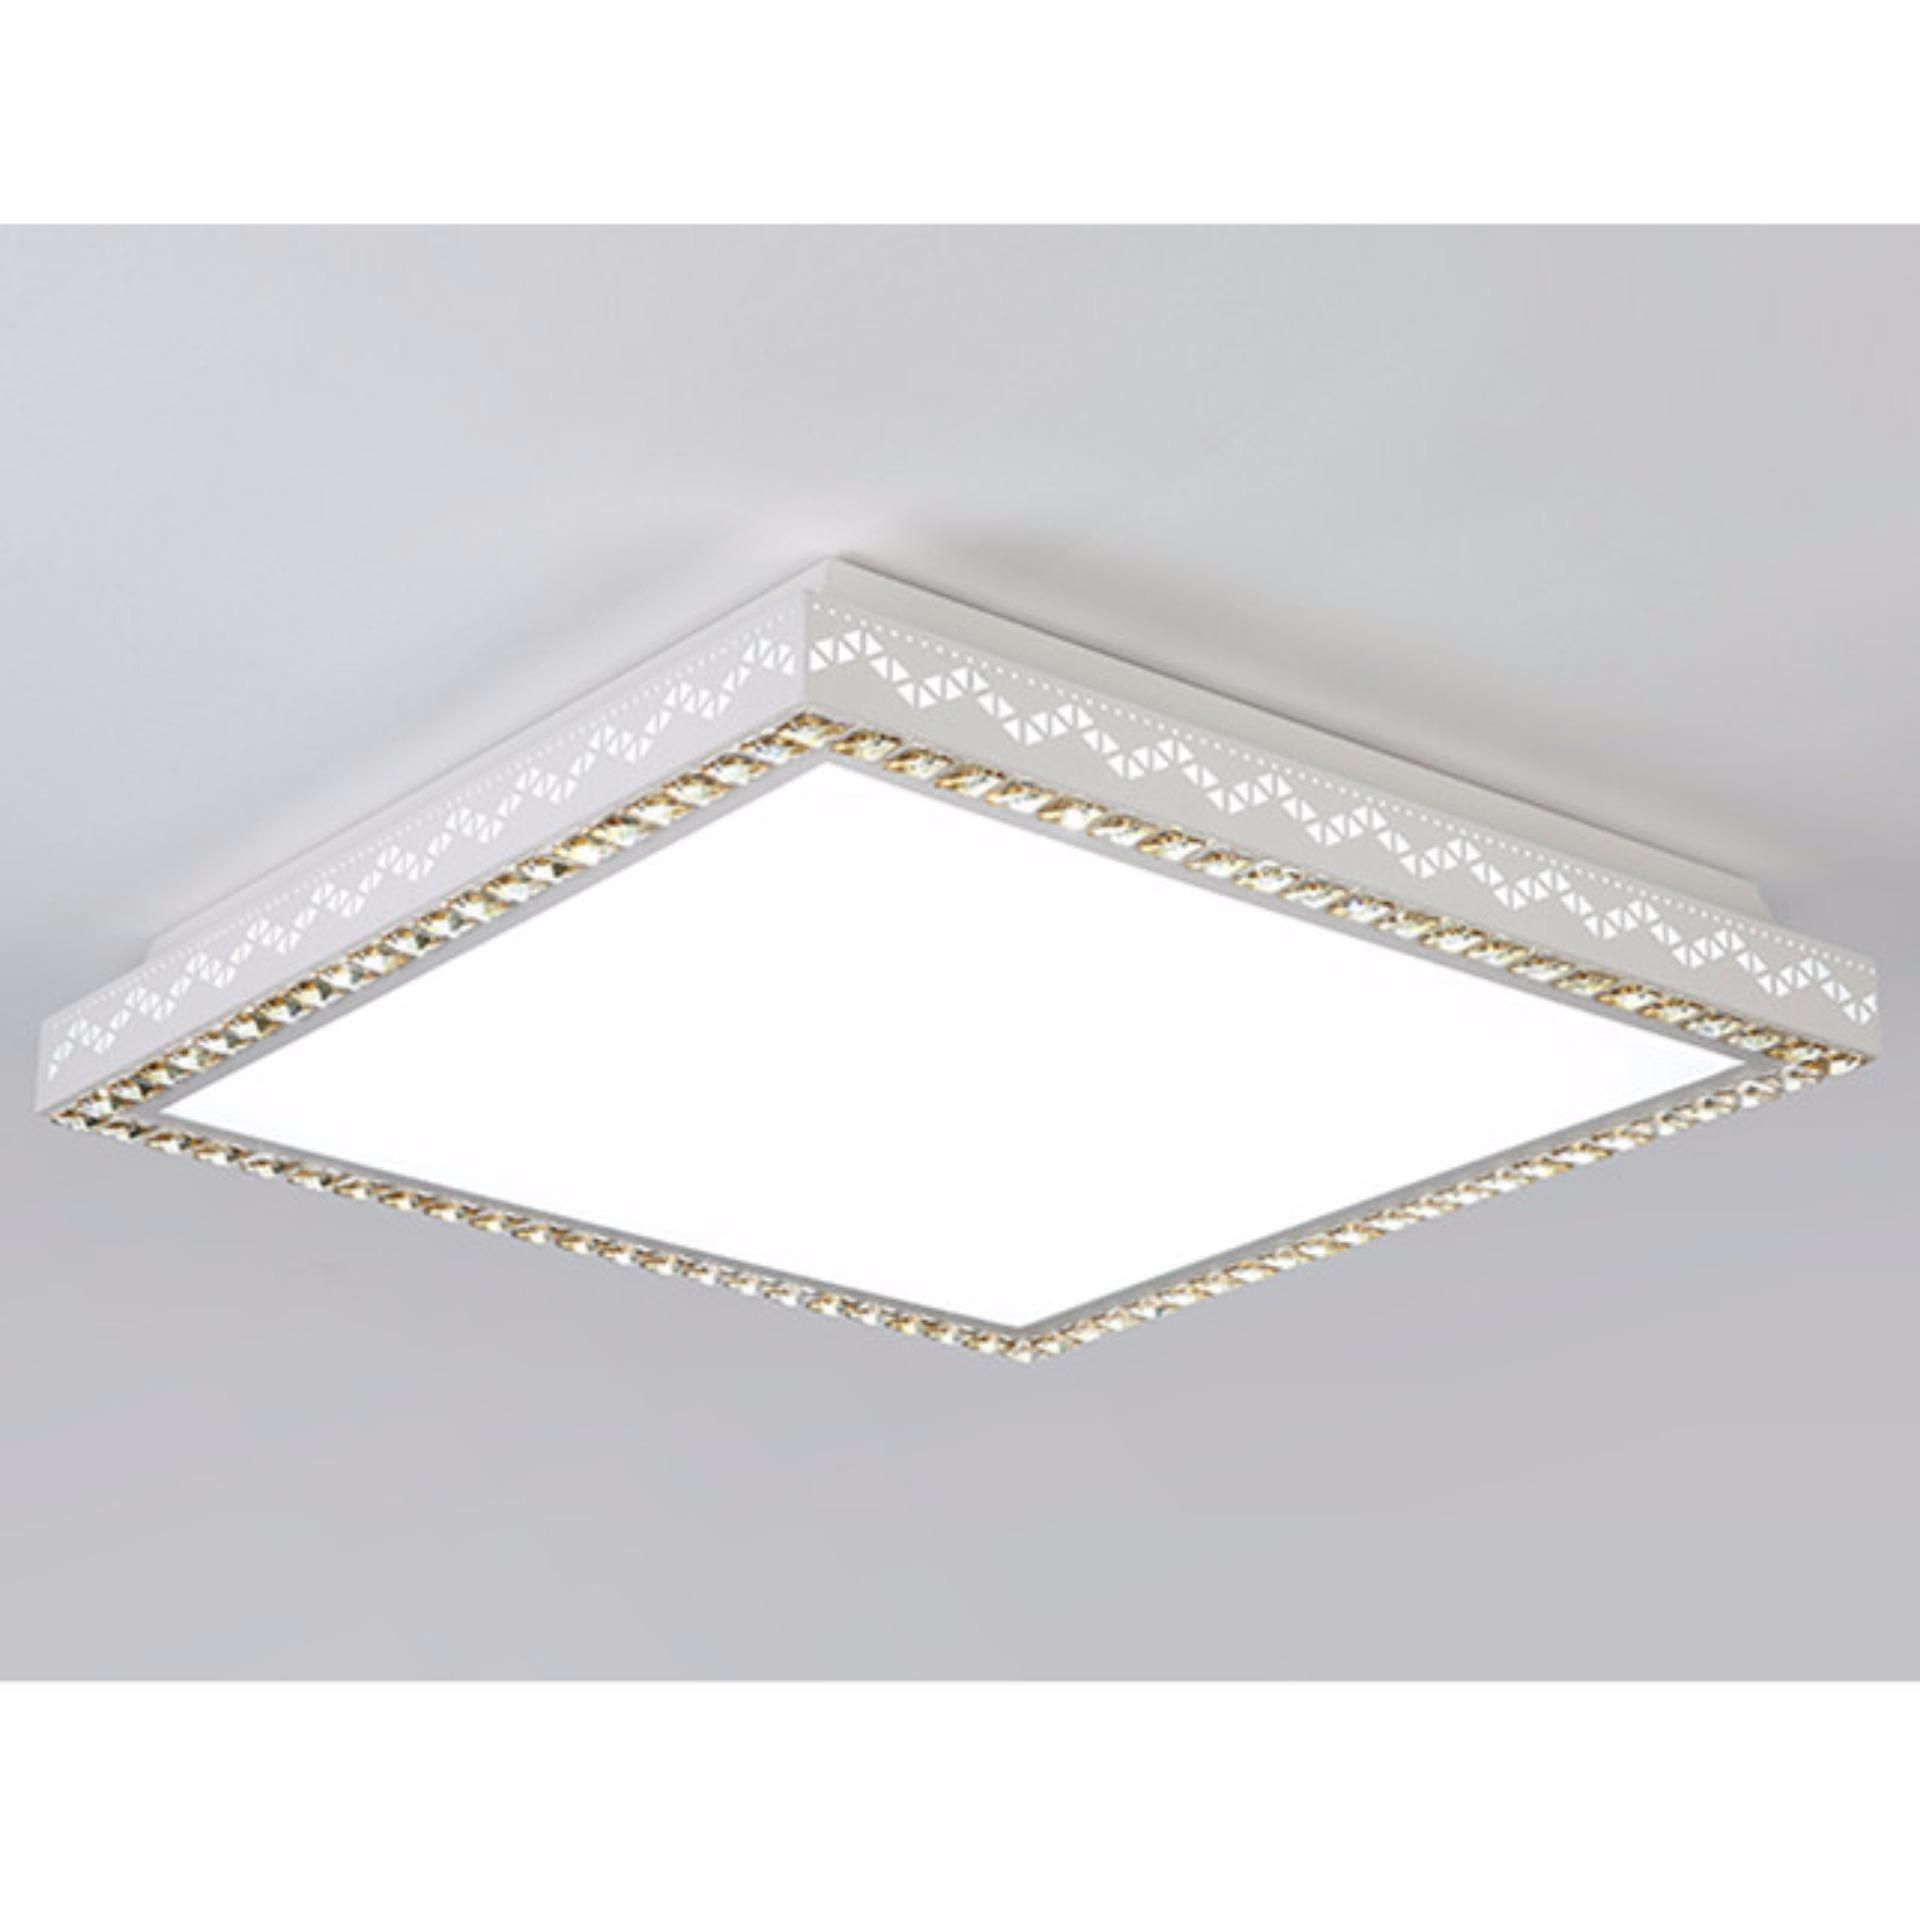 Shifan led ceiling light 5353cm 36w white light creative modernled lamp square